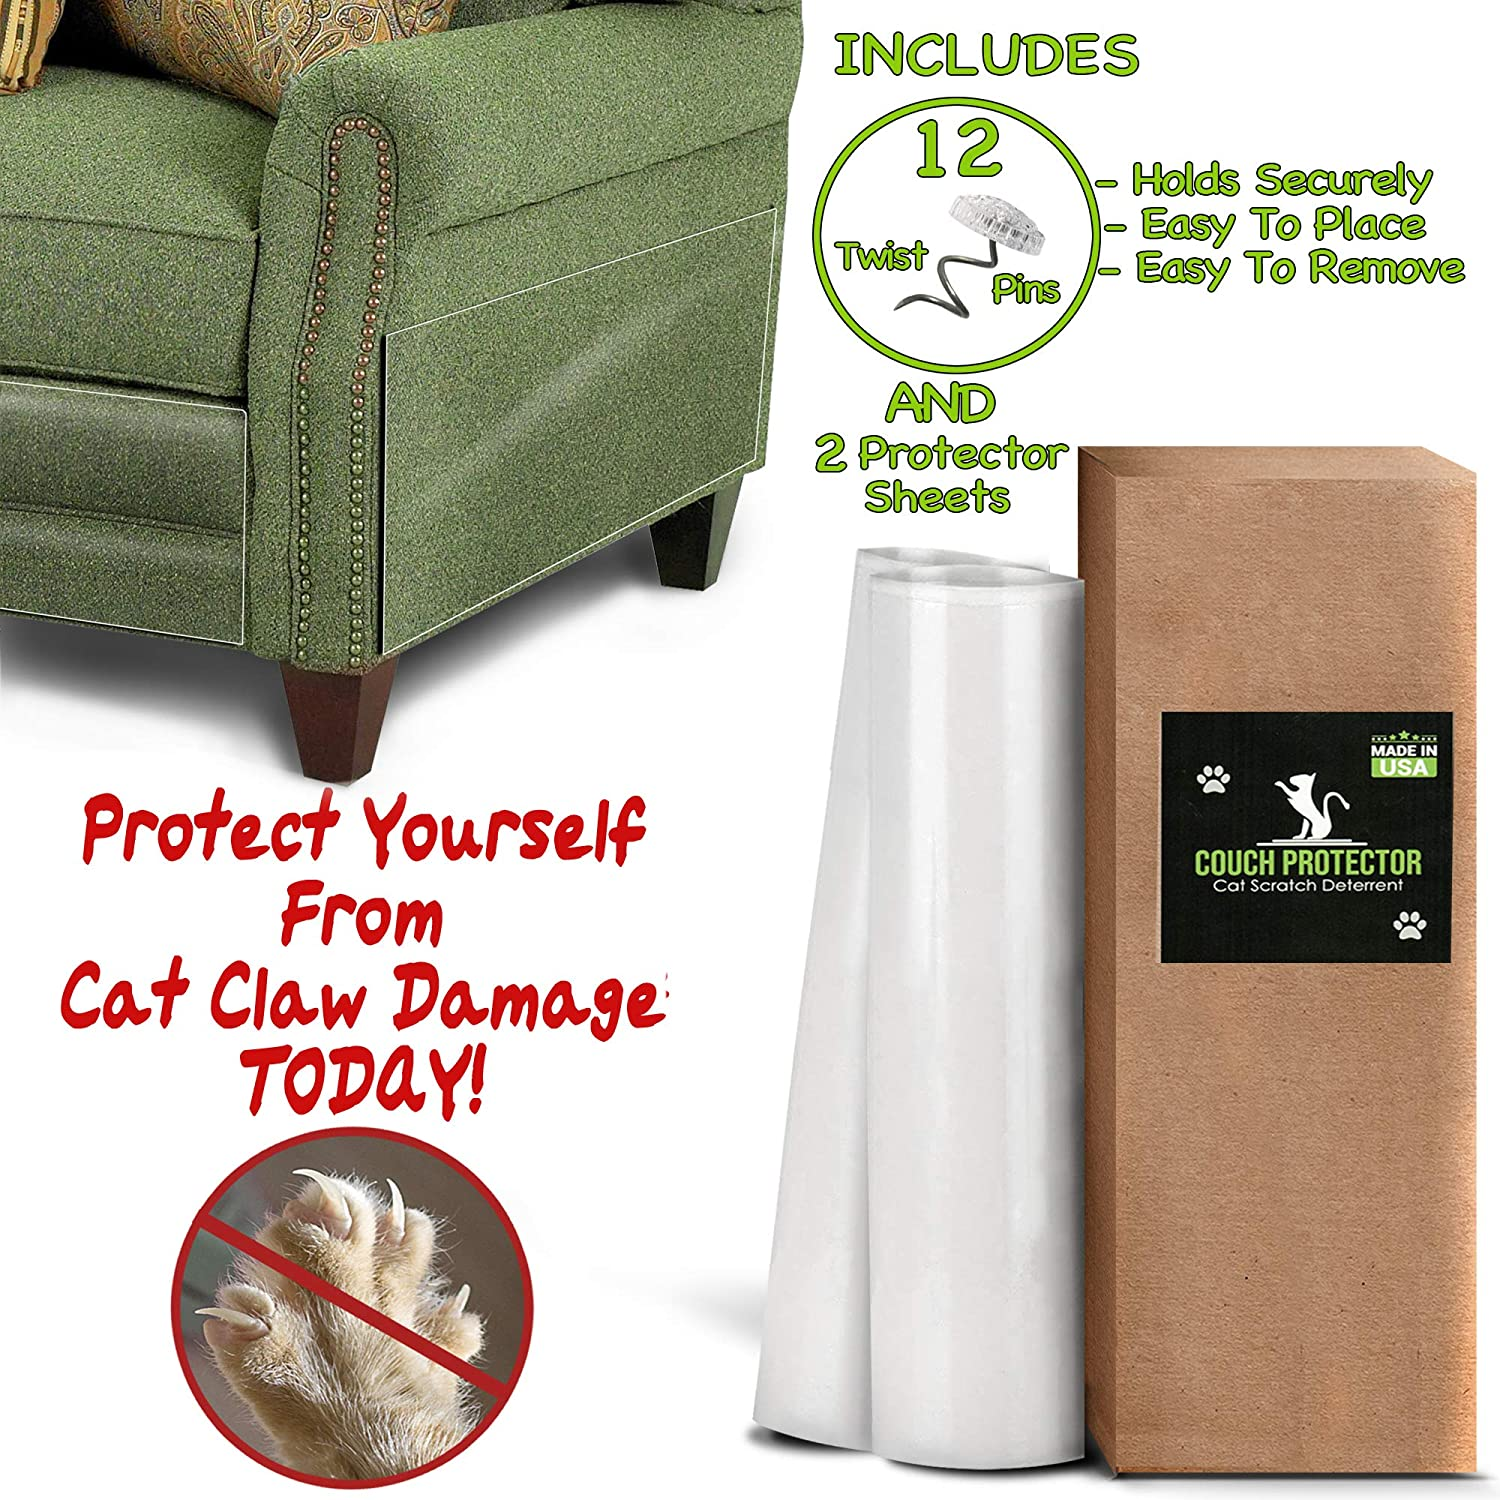 COUCH PROTECTOR - CAT Scratch Deterrent | Cat Repellent For Furniture | Couch Protector From Cats | Cat Couch Protector | Furniture Protector From Cats